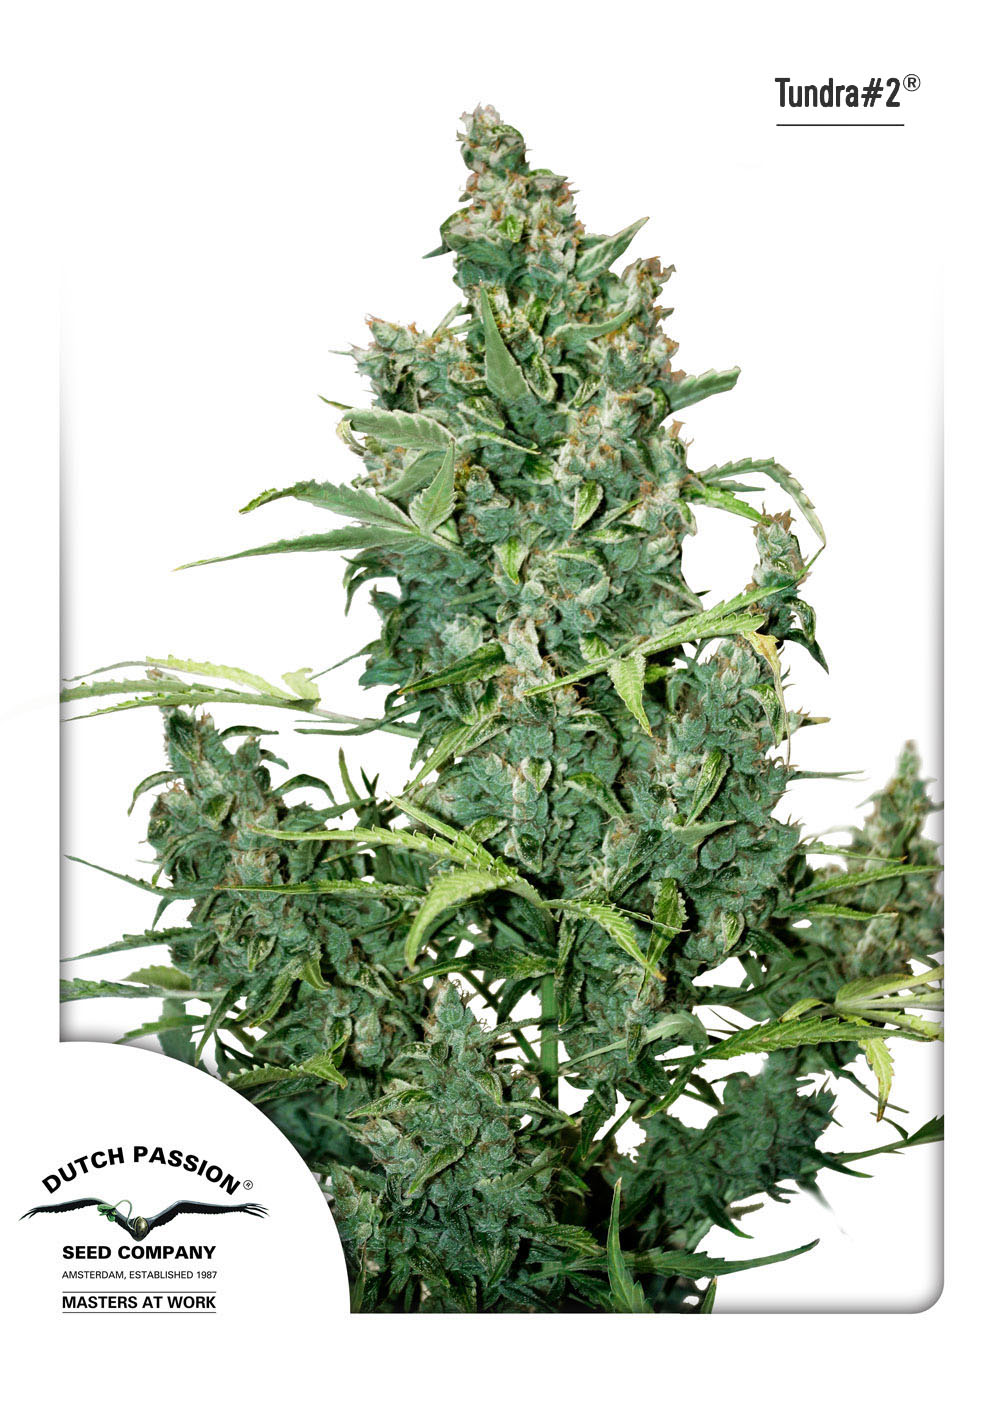 Recenzja Odmiany Tundra#2 od Dutch Passion, Dutch Seeds